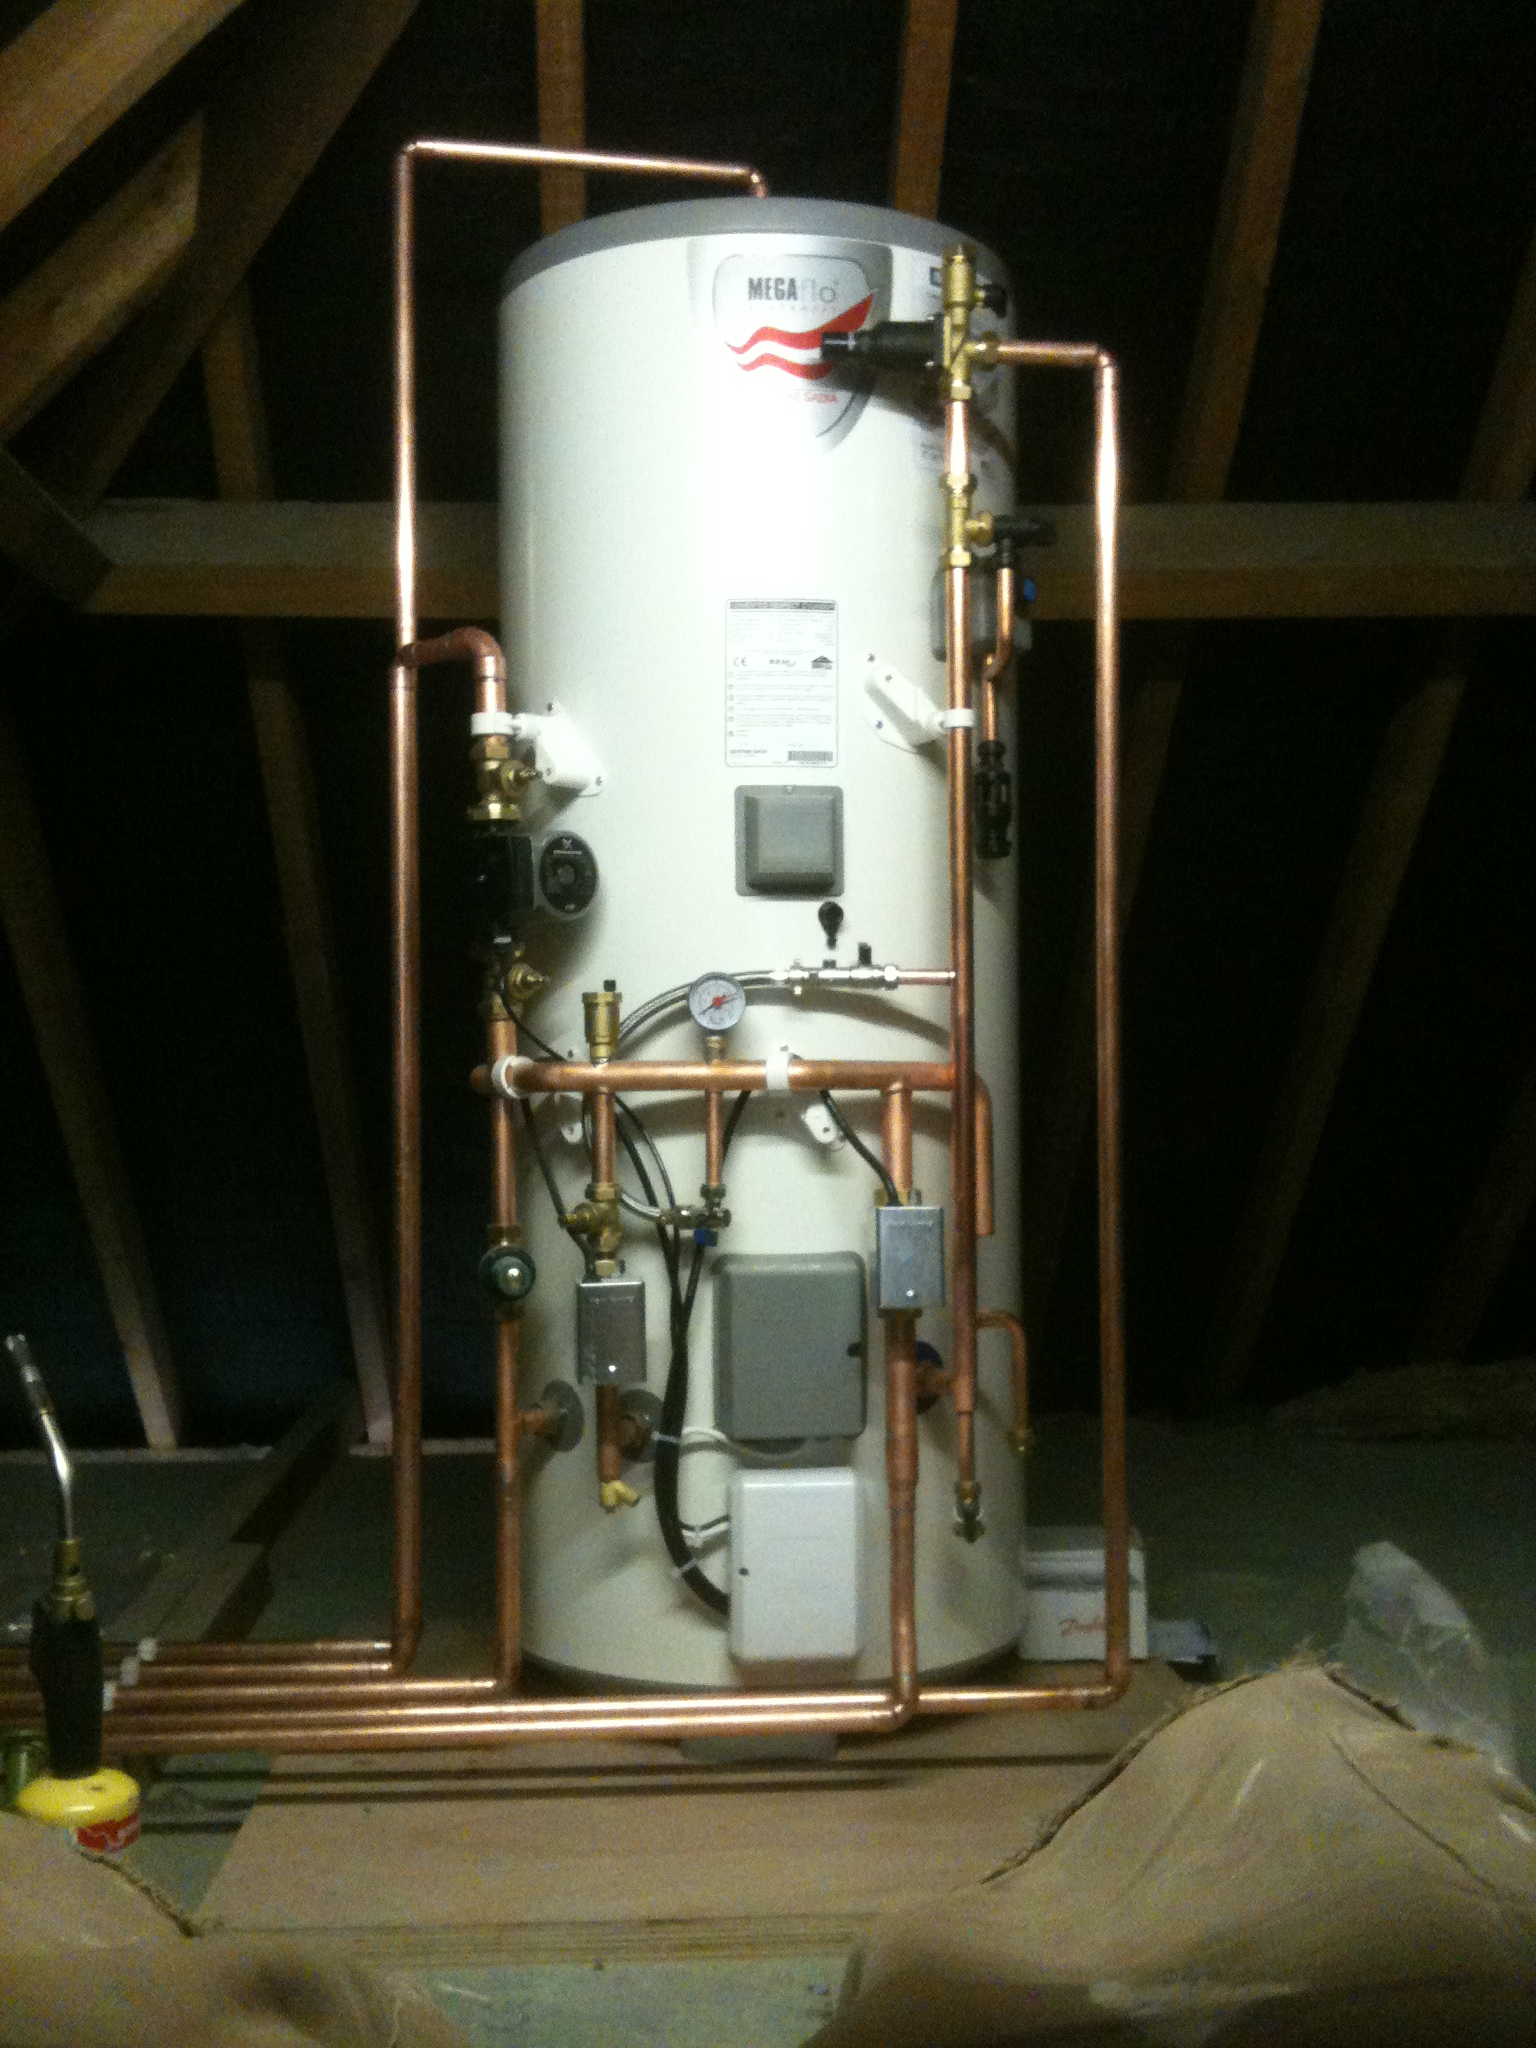 Megaflo unvented cylinder wiring diagram kitchenaid ice maker wiring best how to install unvented hot water system contemporary img 0188 how to install unvented hot water system megaflo unvented cylinder wiring diagram asfbconference2016 Gallery